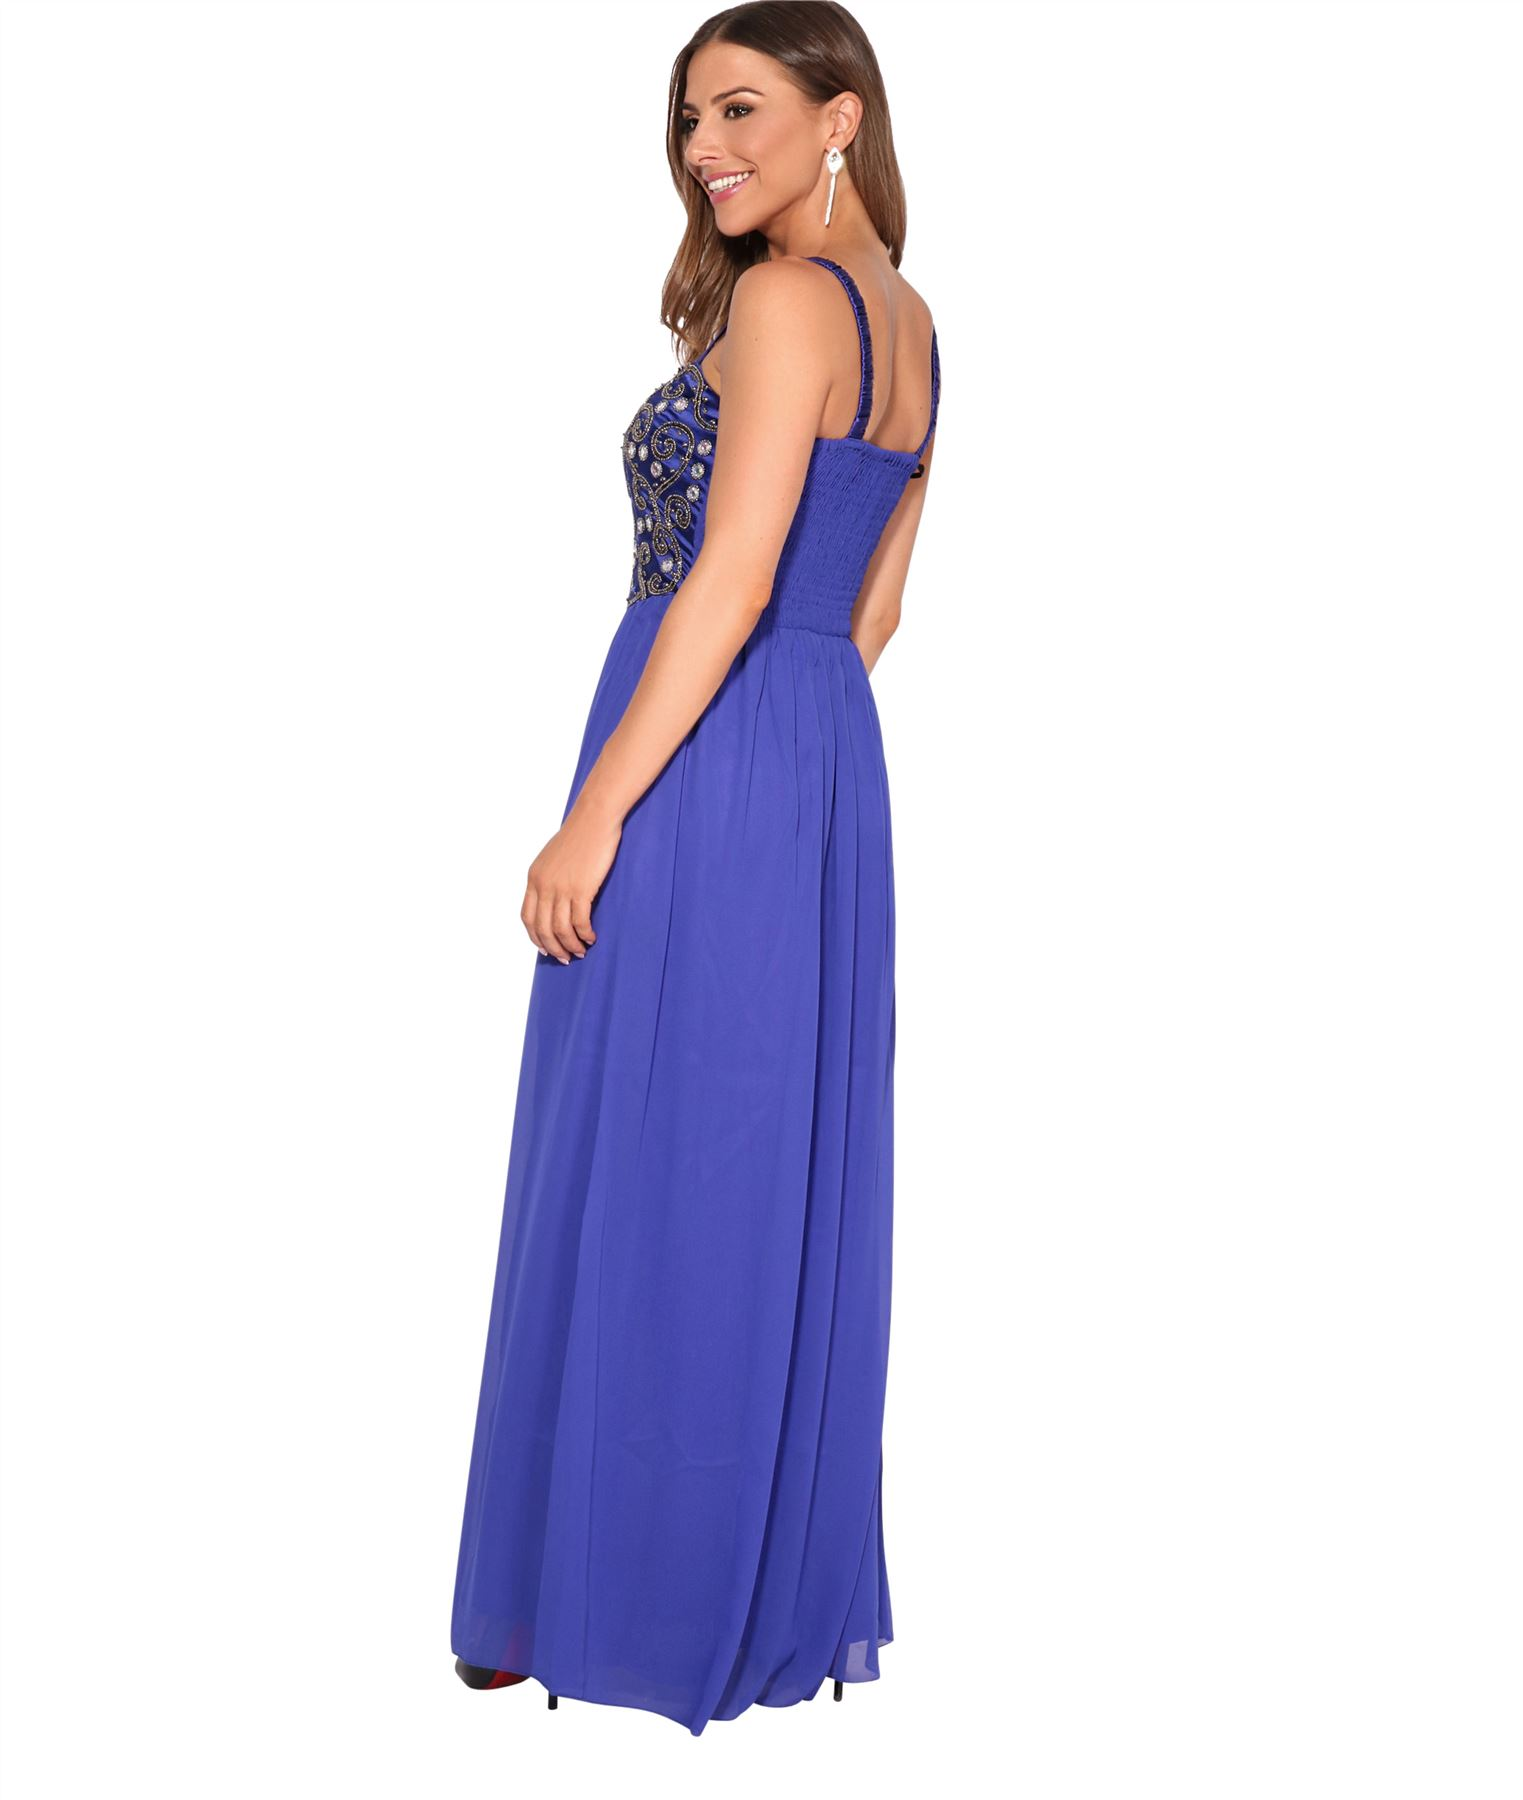 Women-Formal-Diamante-Wedding-Cocktail-Dress-Long-Ball-Gown-Prom-Maxi-Party-8-18 thumbnail 28